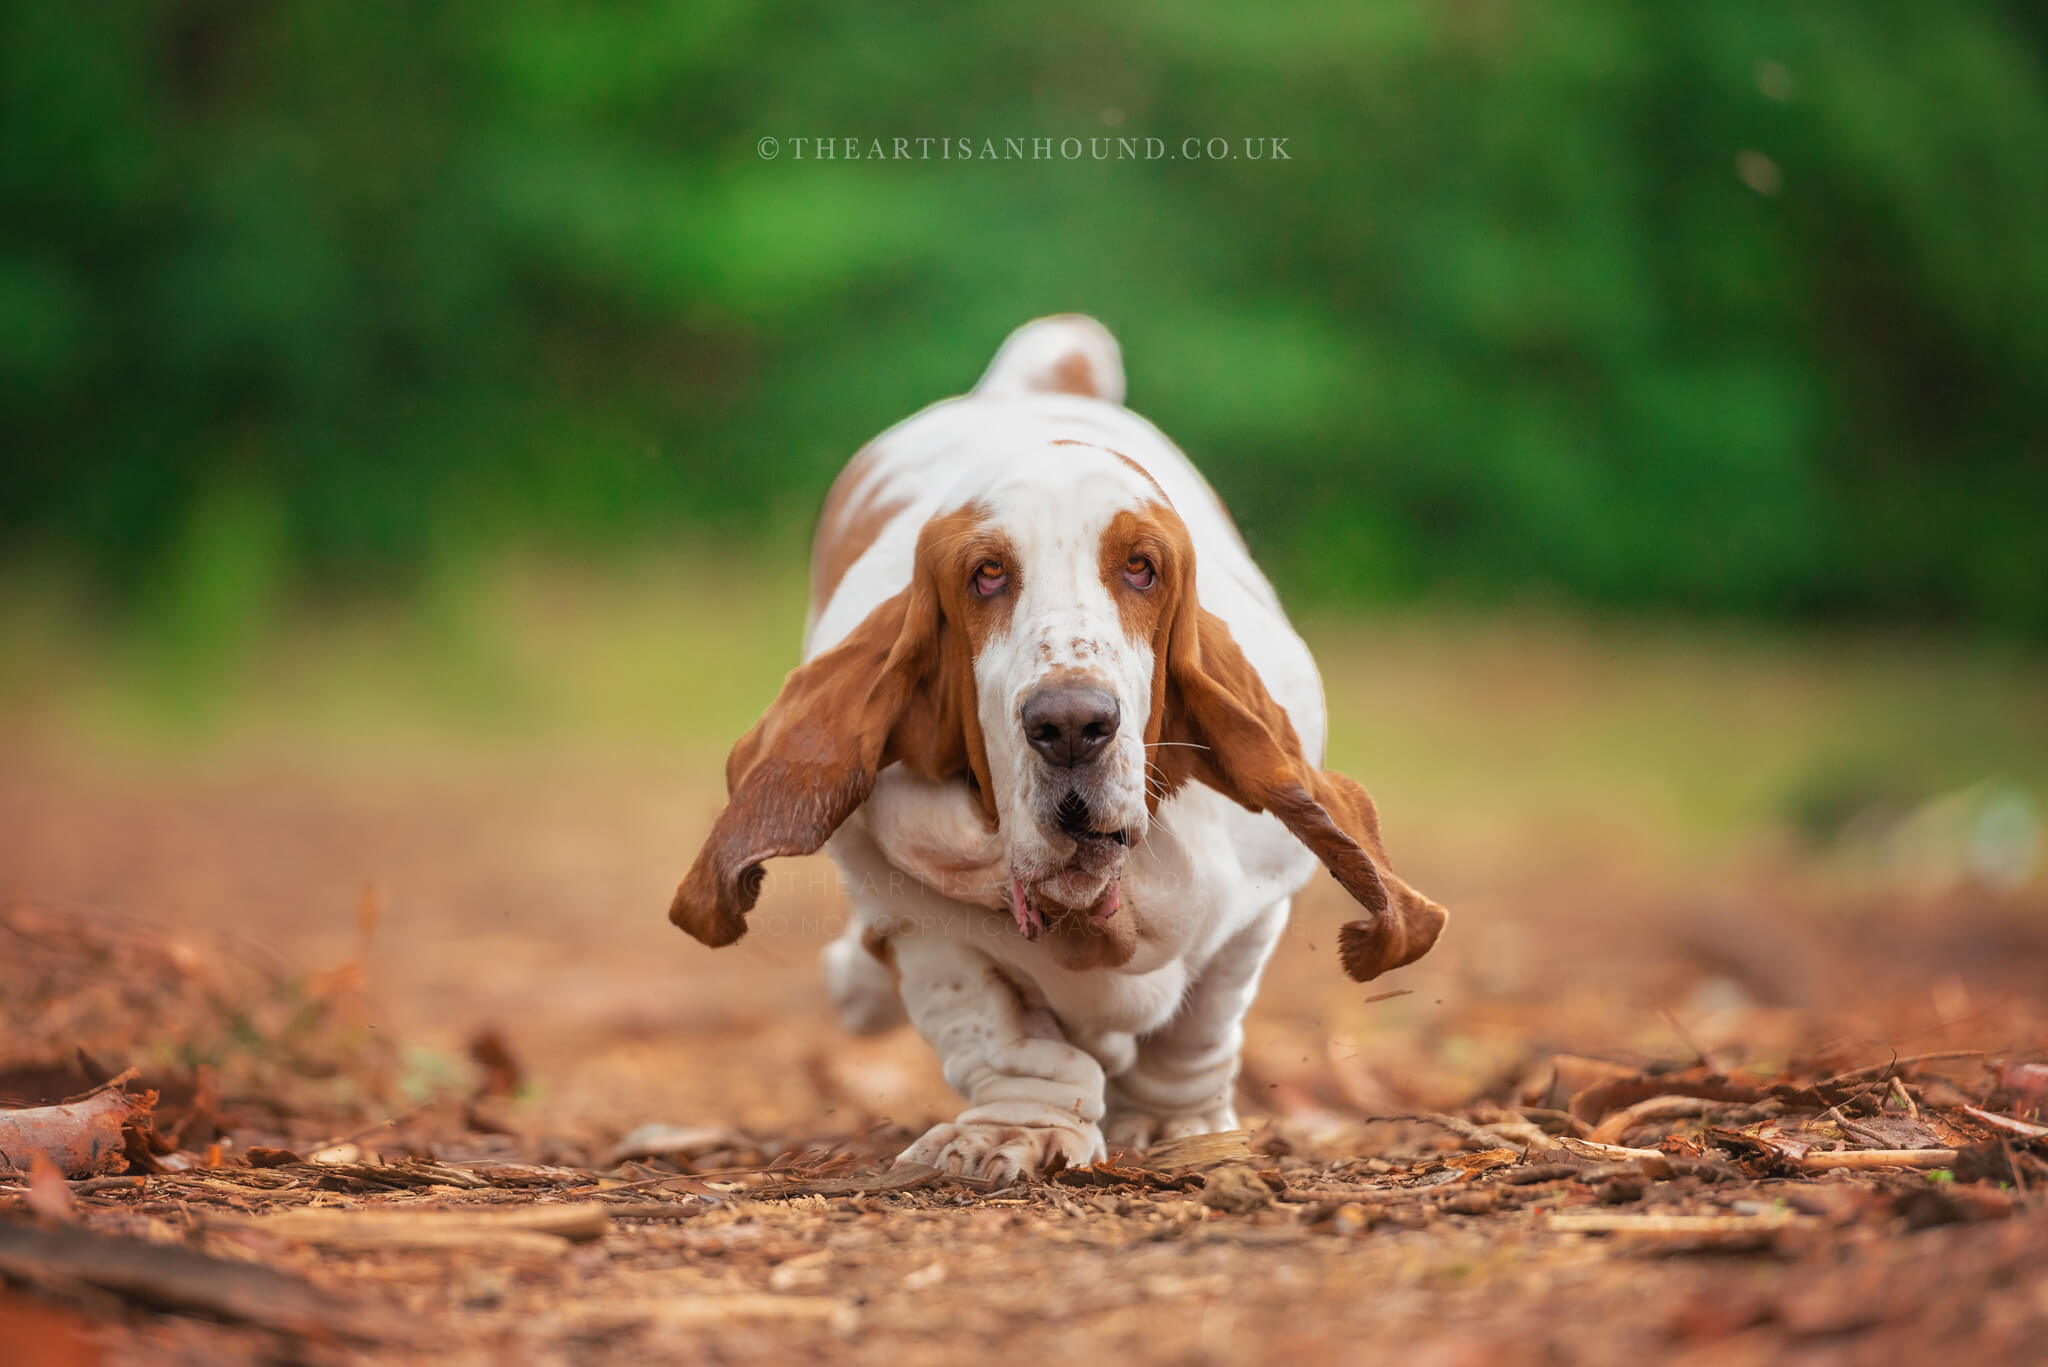 bassett-hound-running-towards-camera